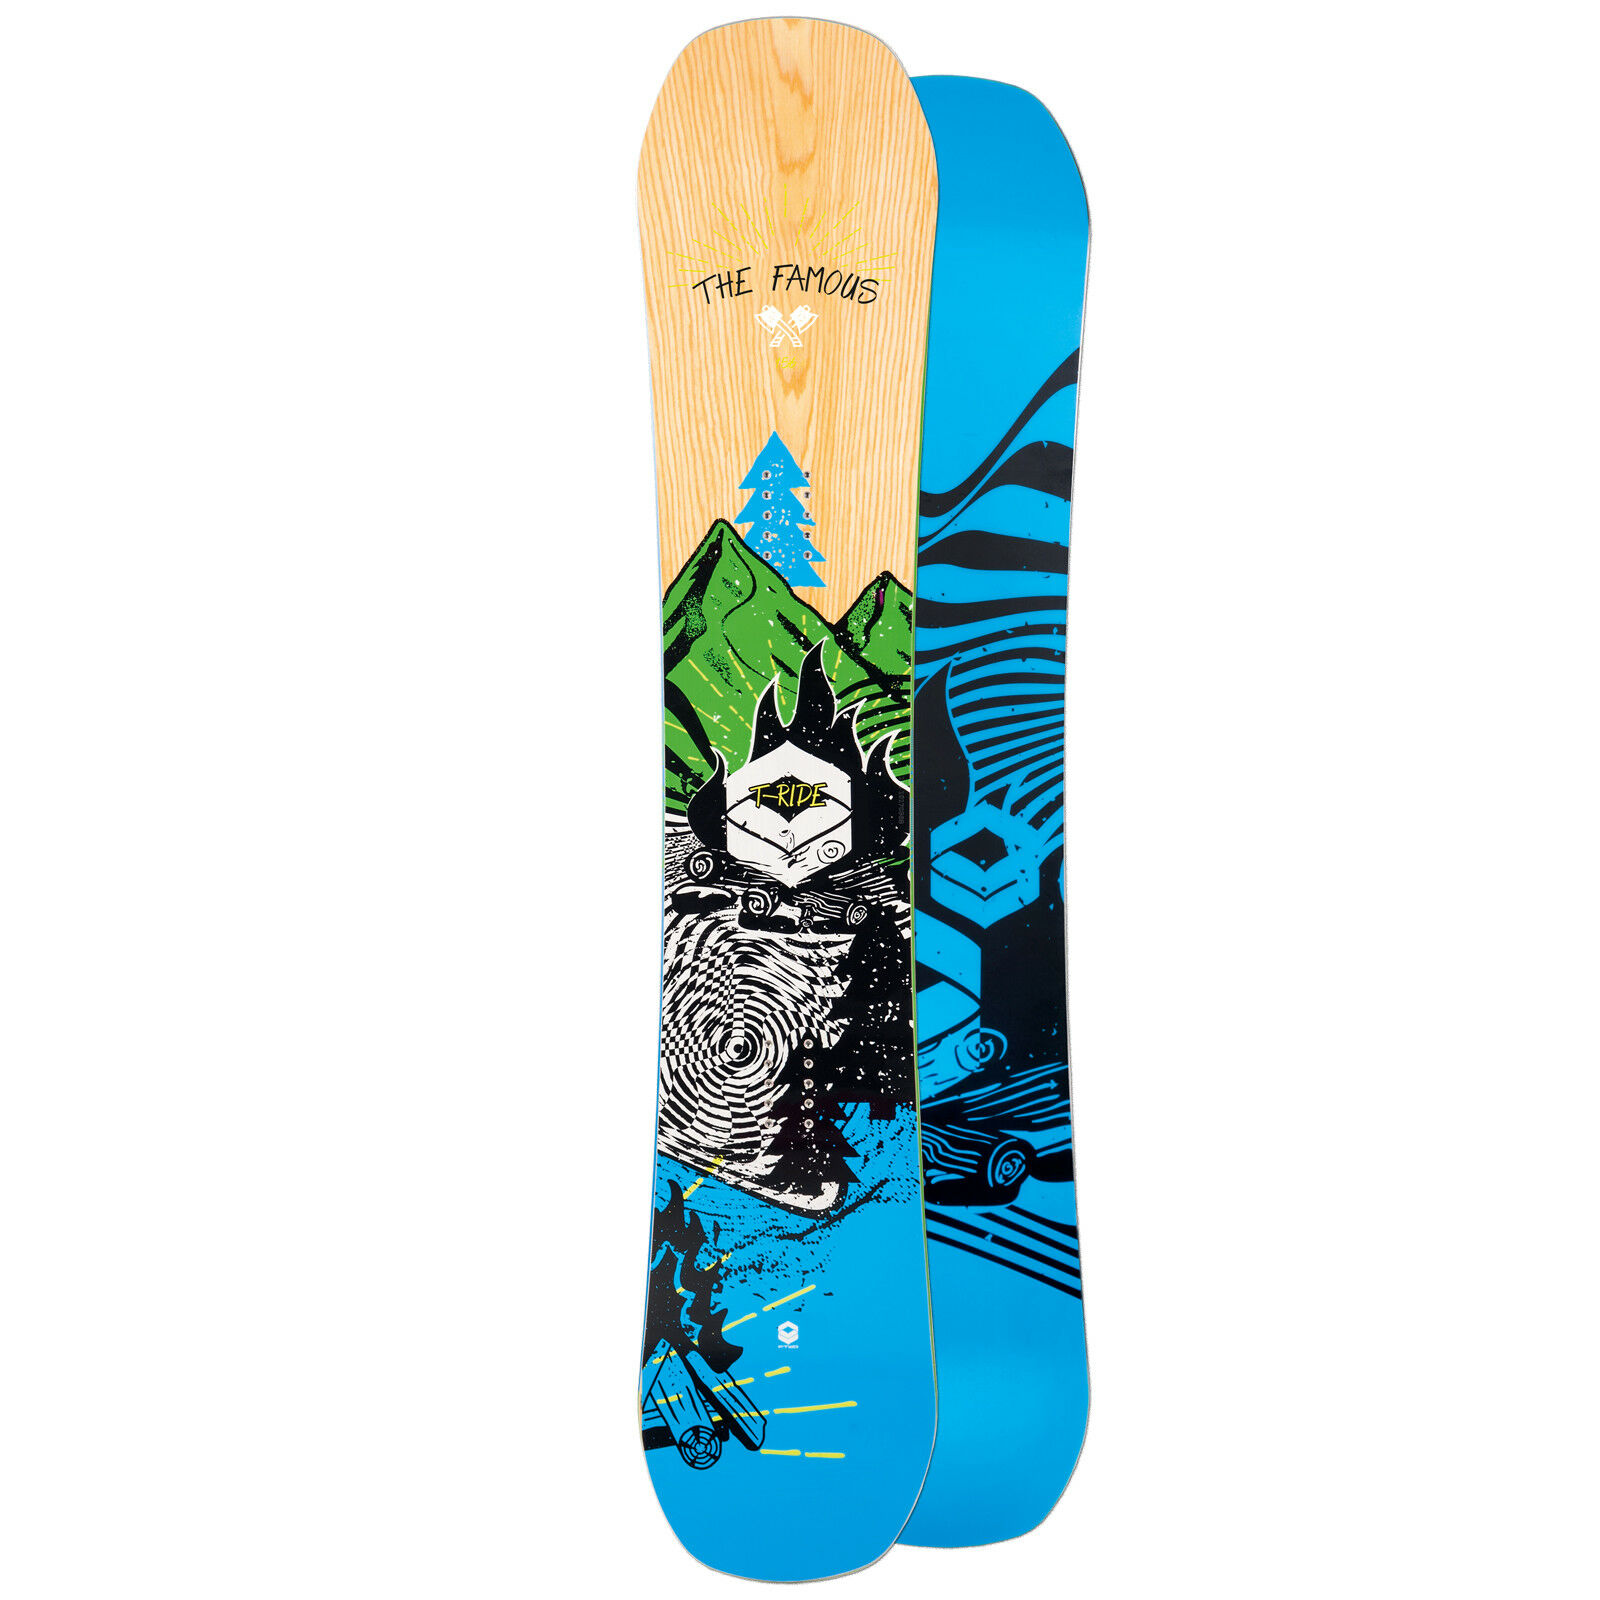 HERREN FREESTYLE CAMBER SNOWBOARD FTWO T-RIDE 2019  154 CM